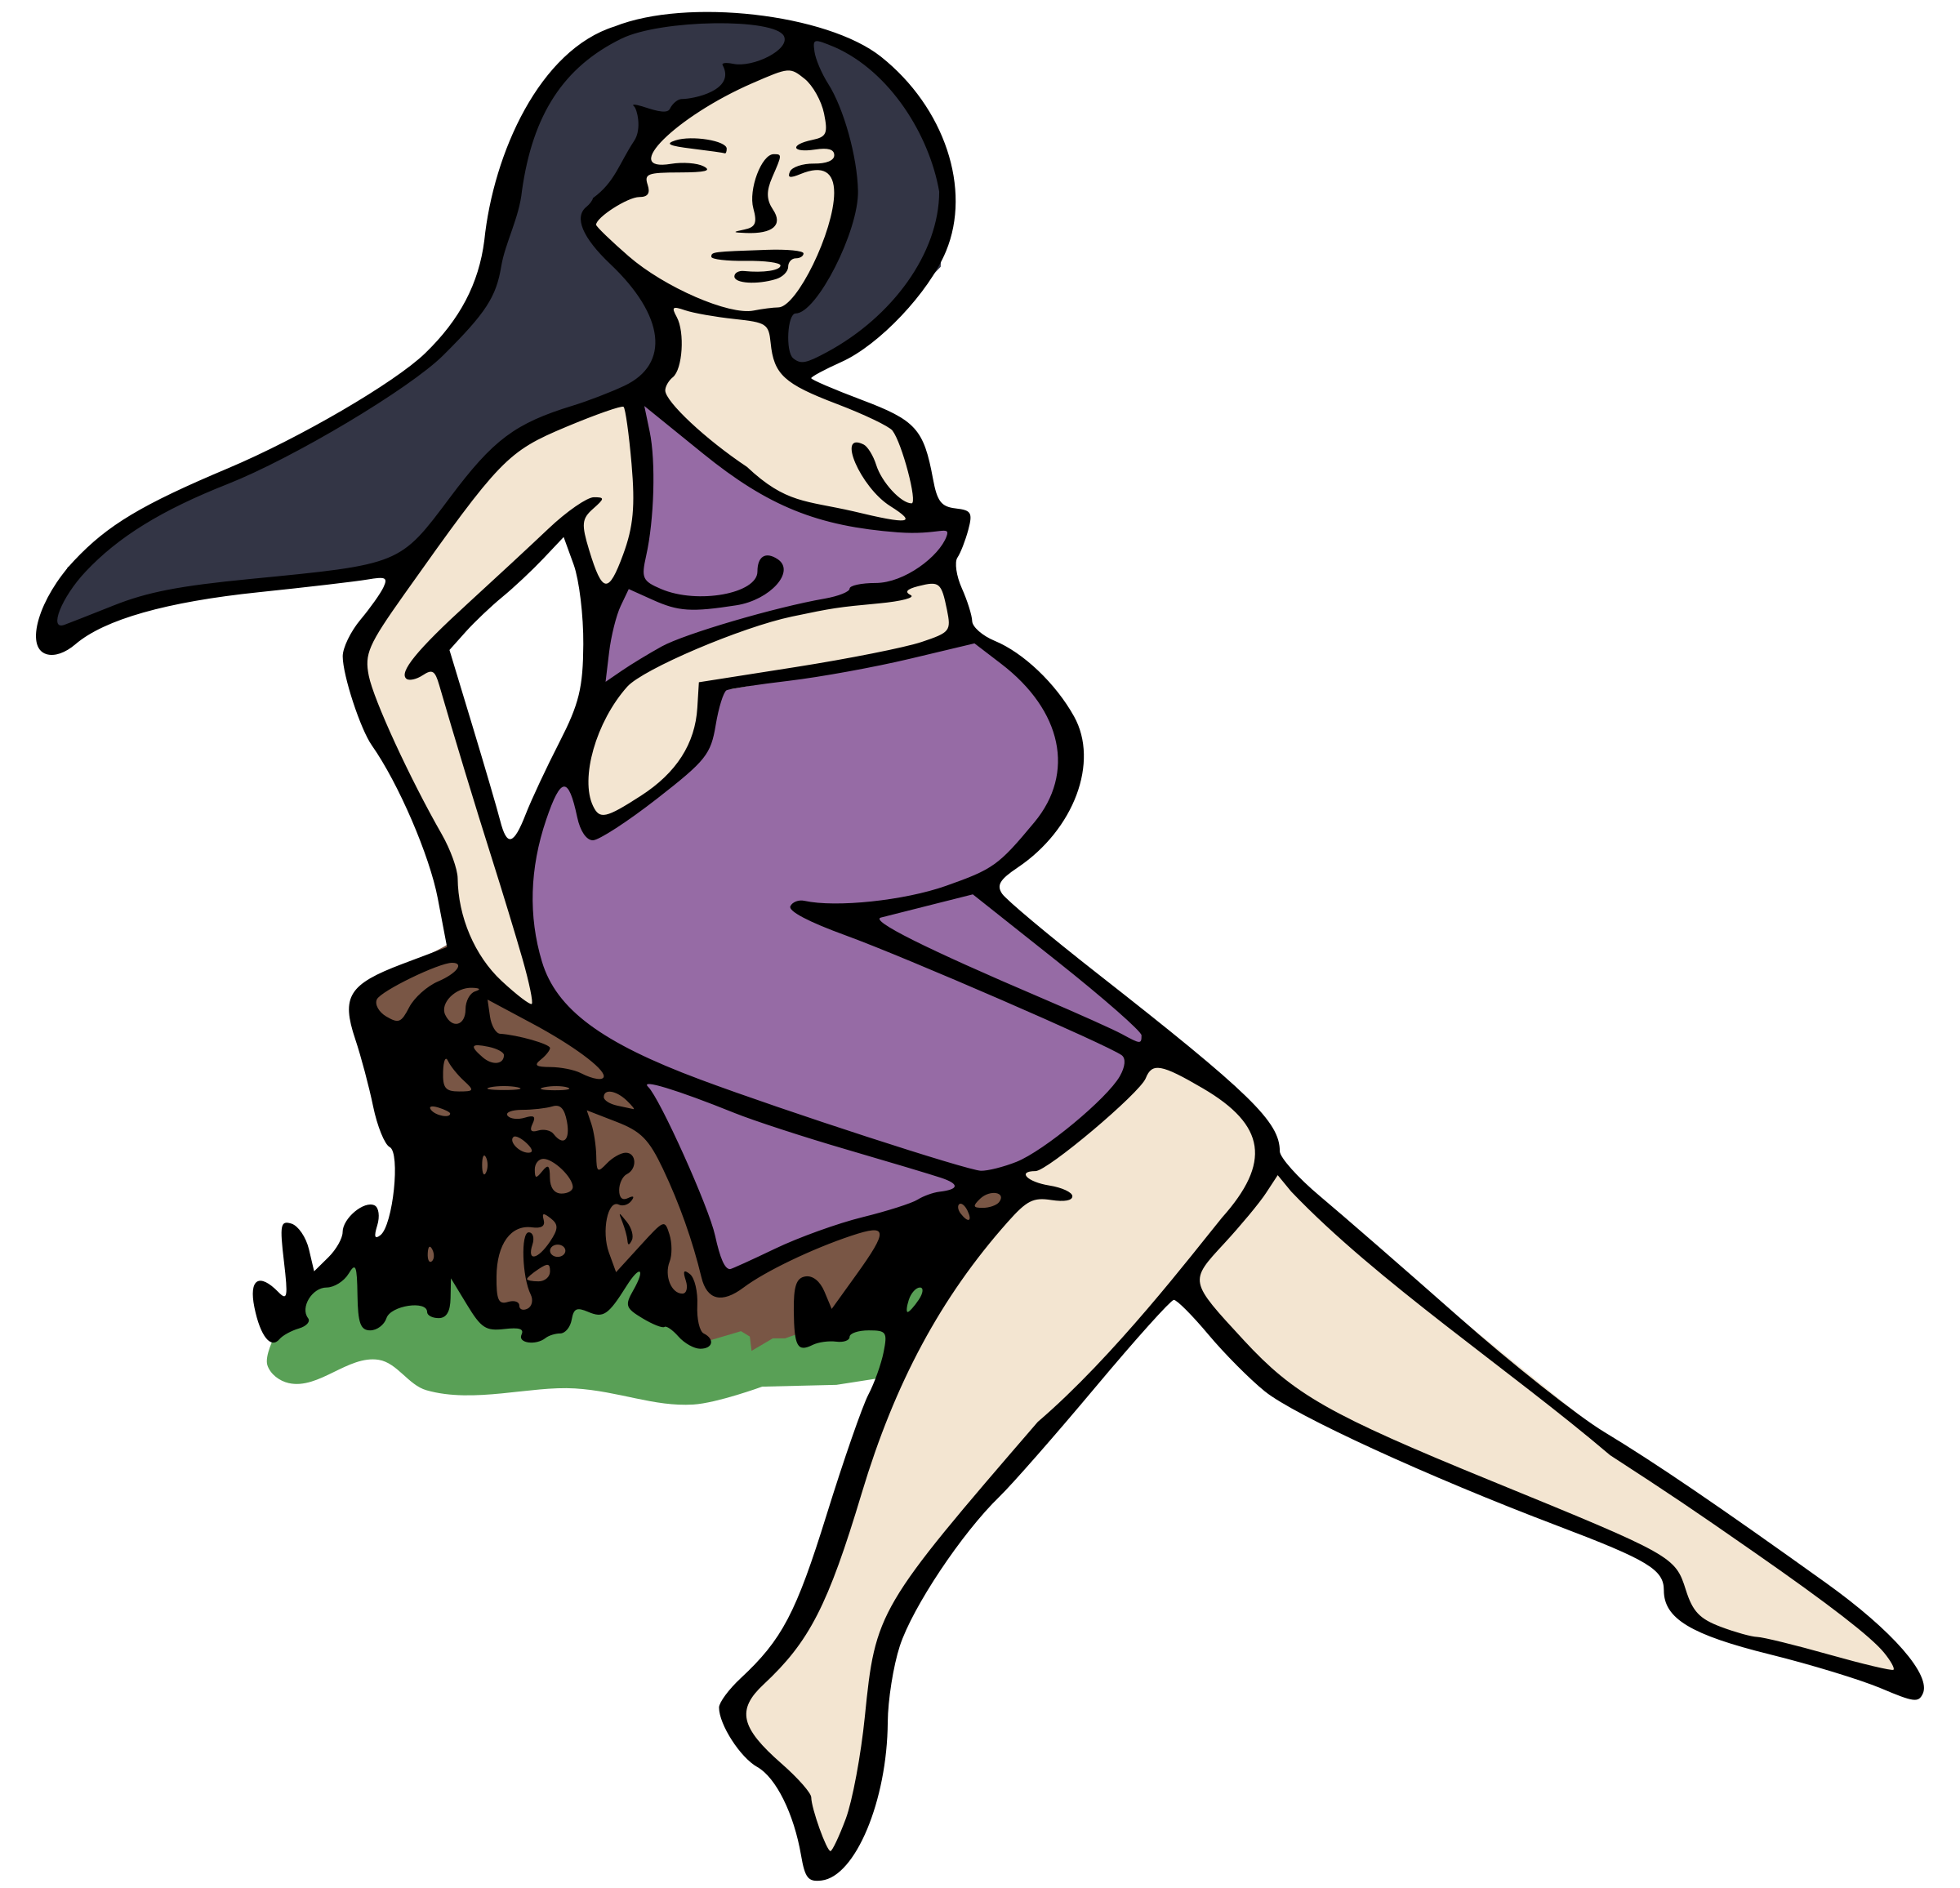 Pregnant Lady on a Stump by j4p4n